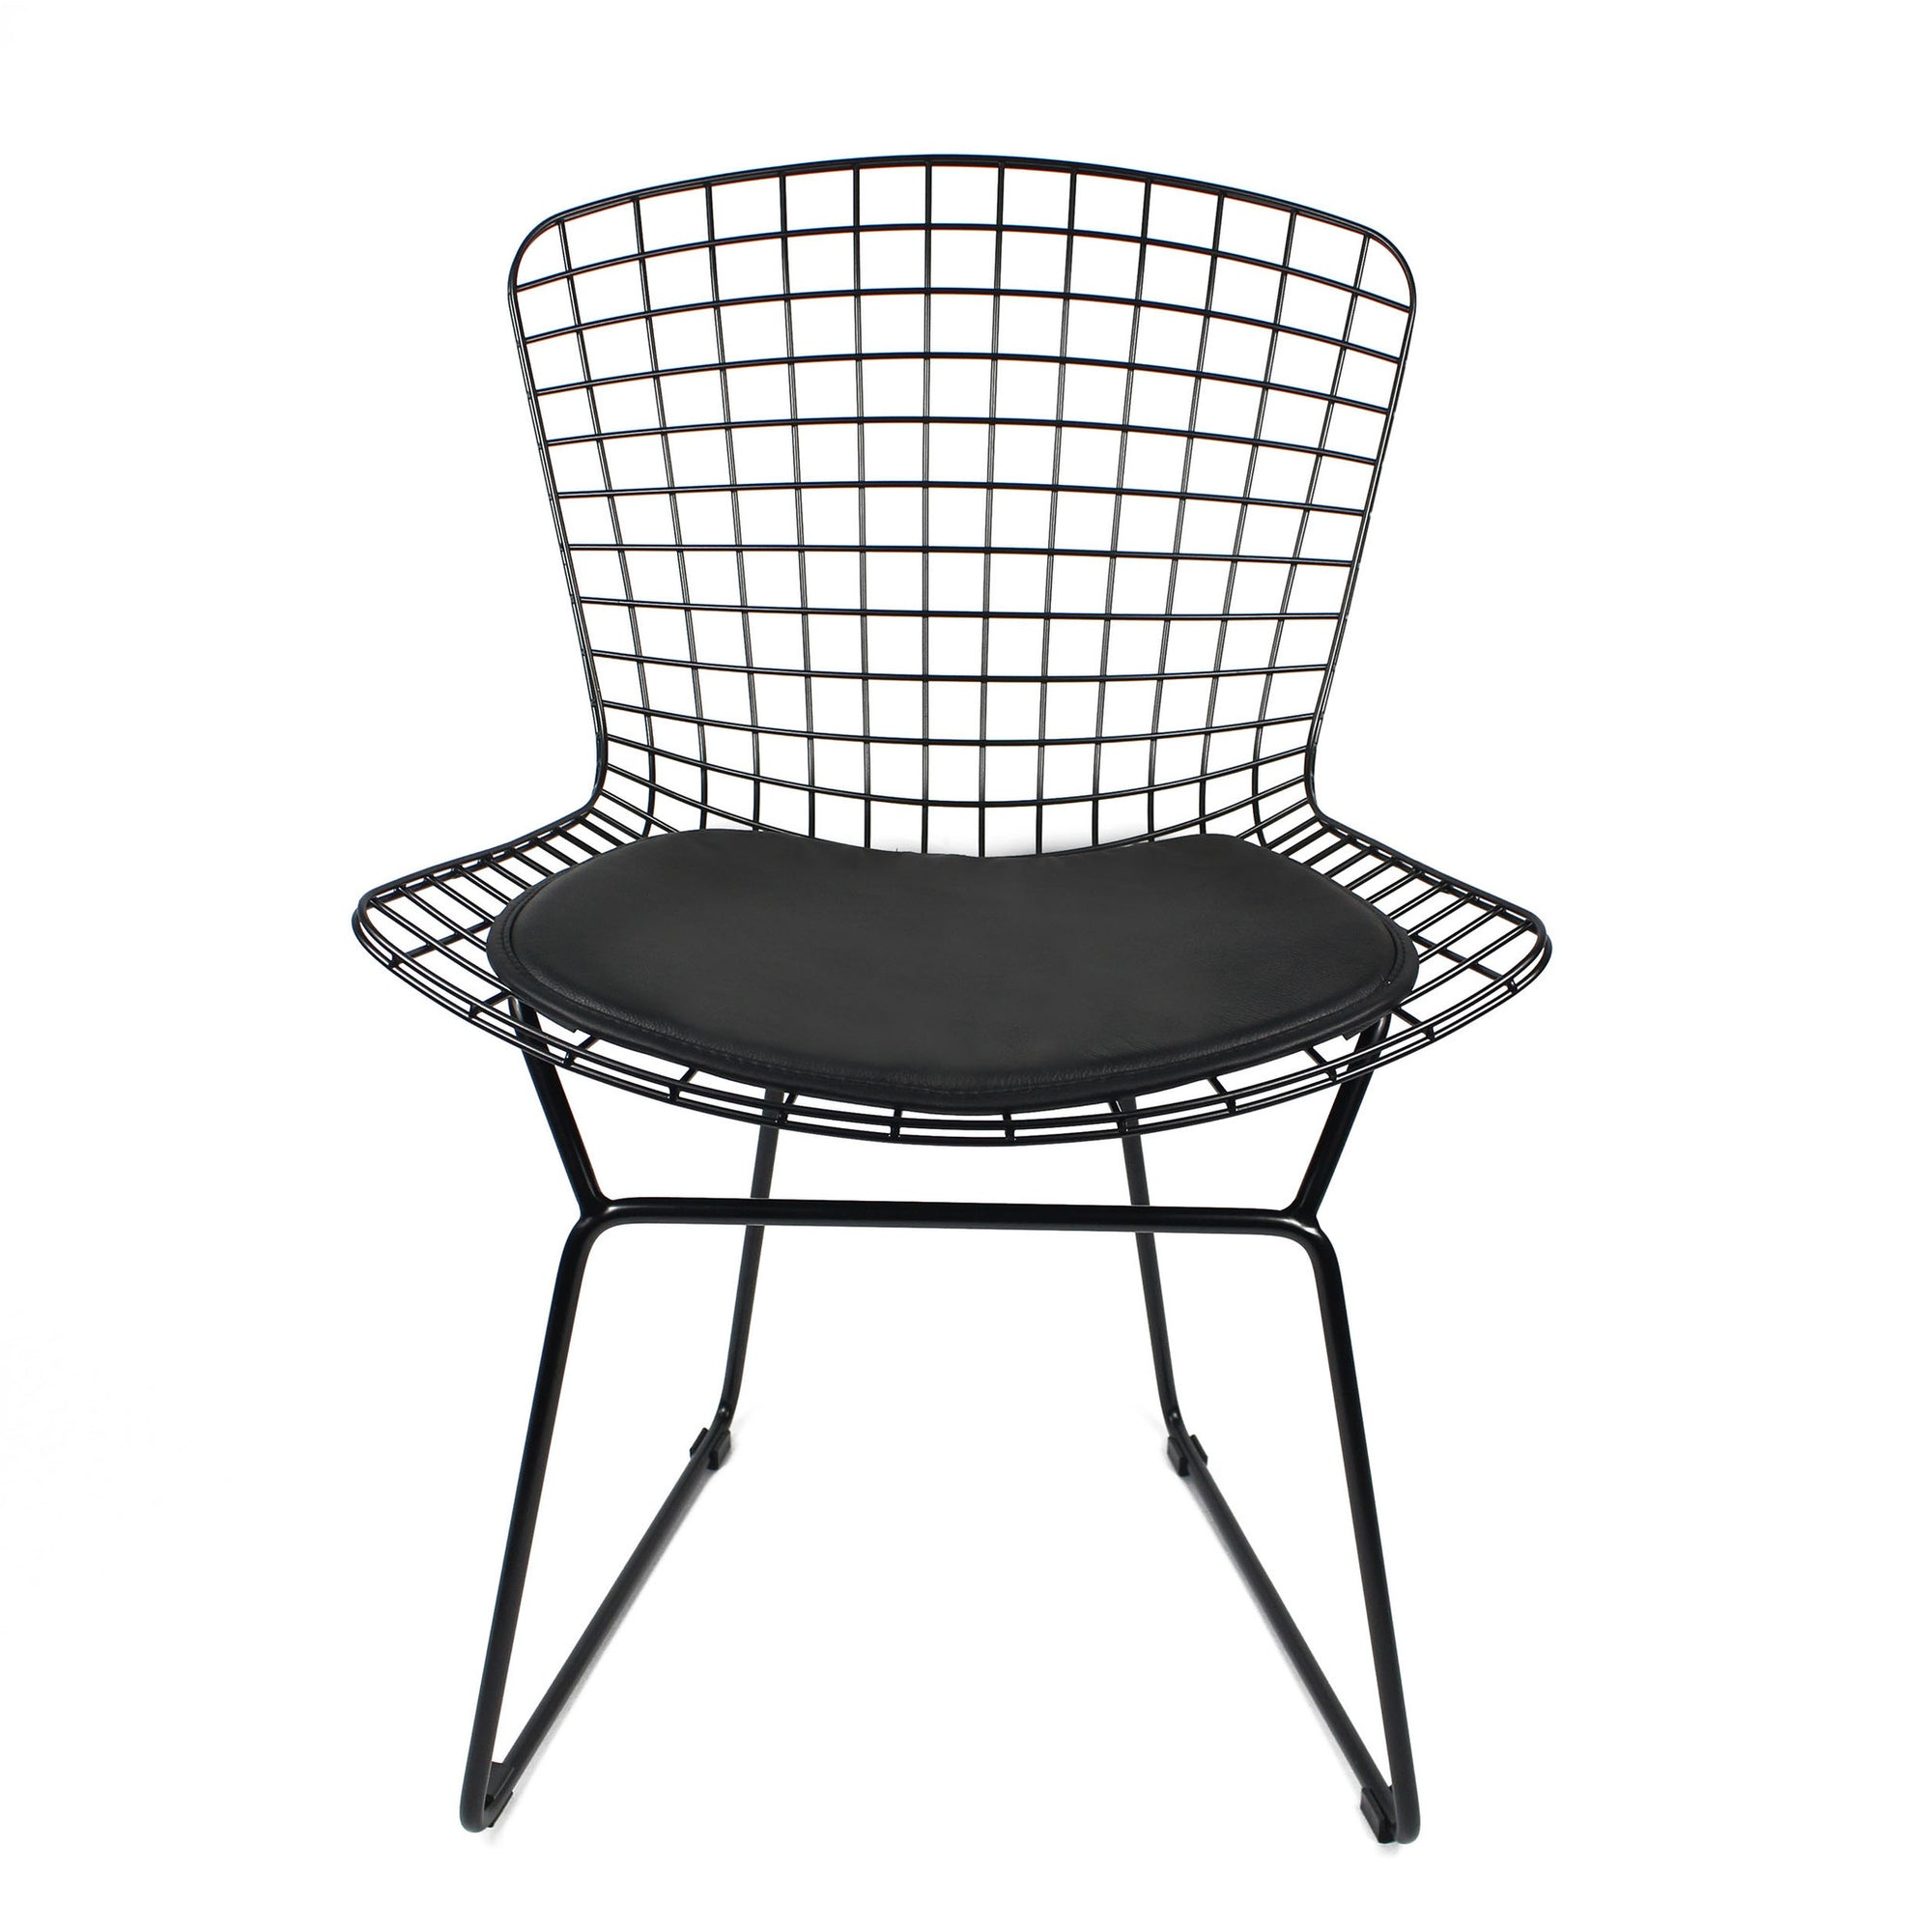 Chair - Wire Chair& Genuin Leather Cushion BP8020-B